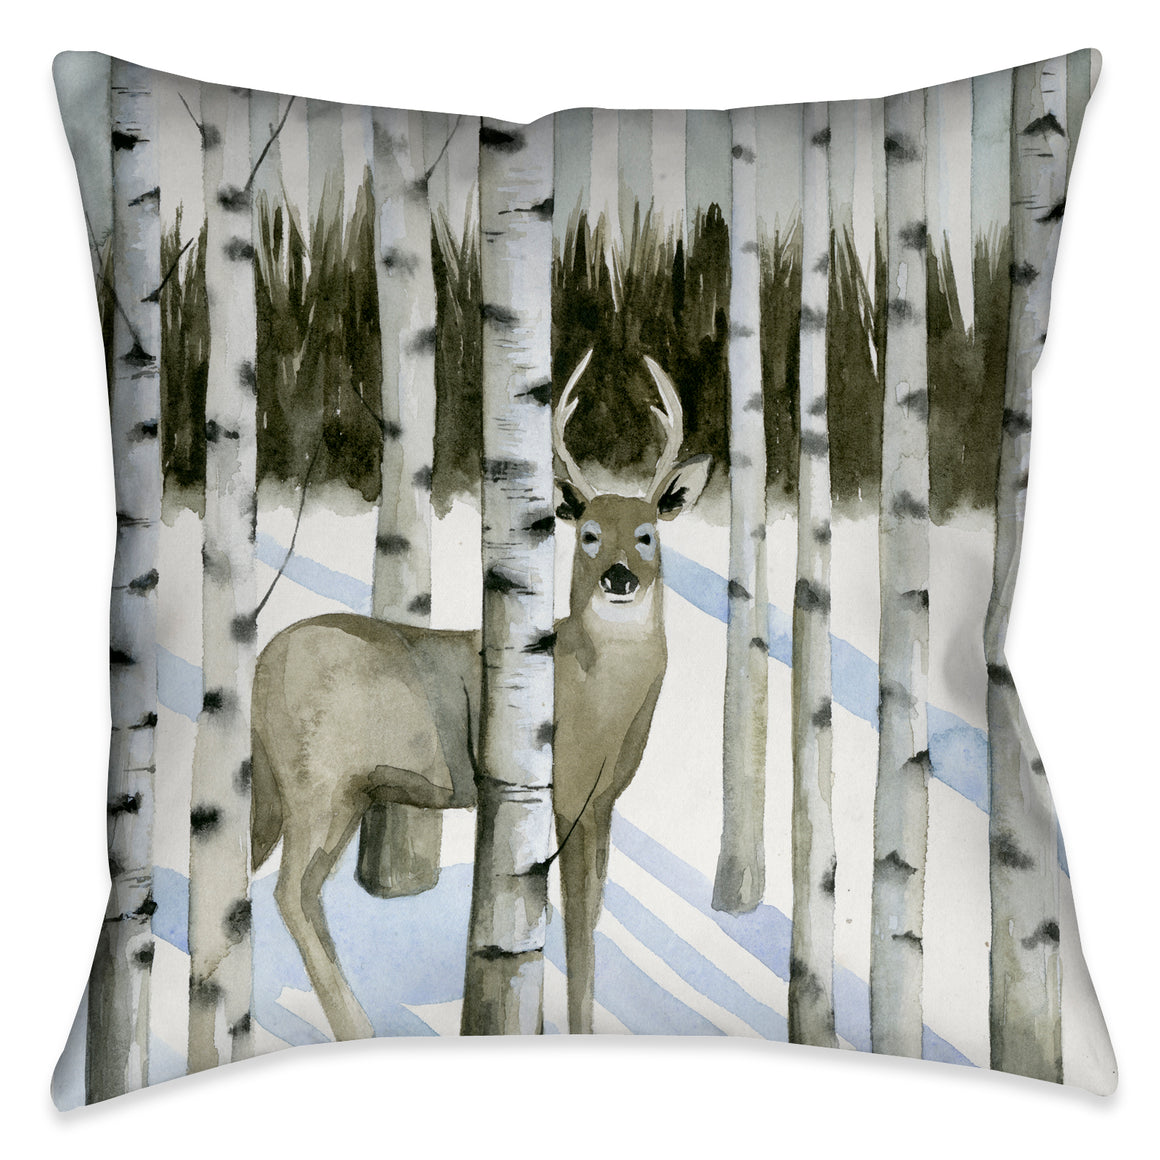 "The ""Deer in Snowfall I"" pillow features a snowy scene where a deer appears amongst a beautifully rendered birch tree landscape. This design will suit anyone who has a sophisticated appreciation for nature."